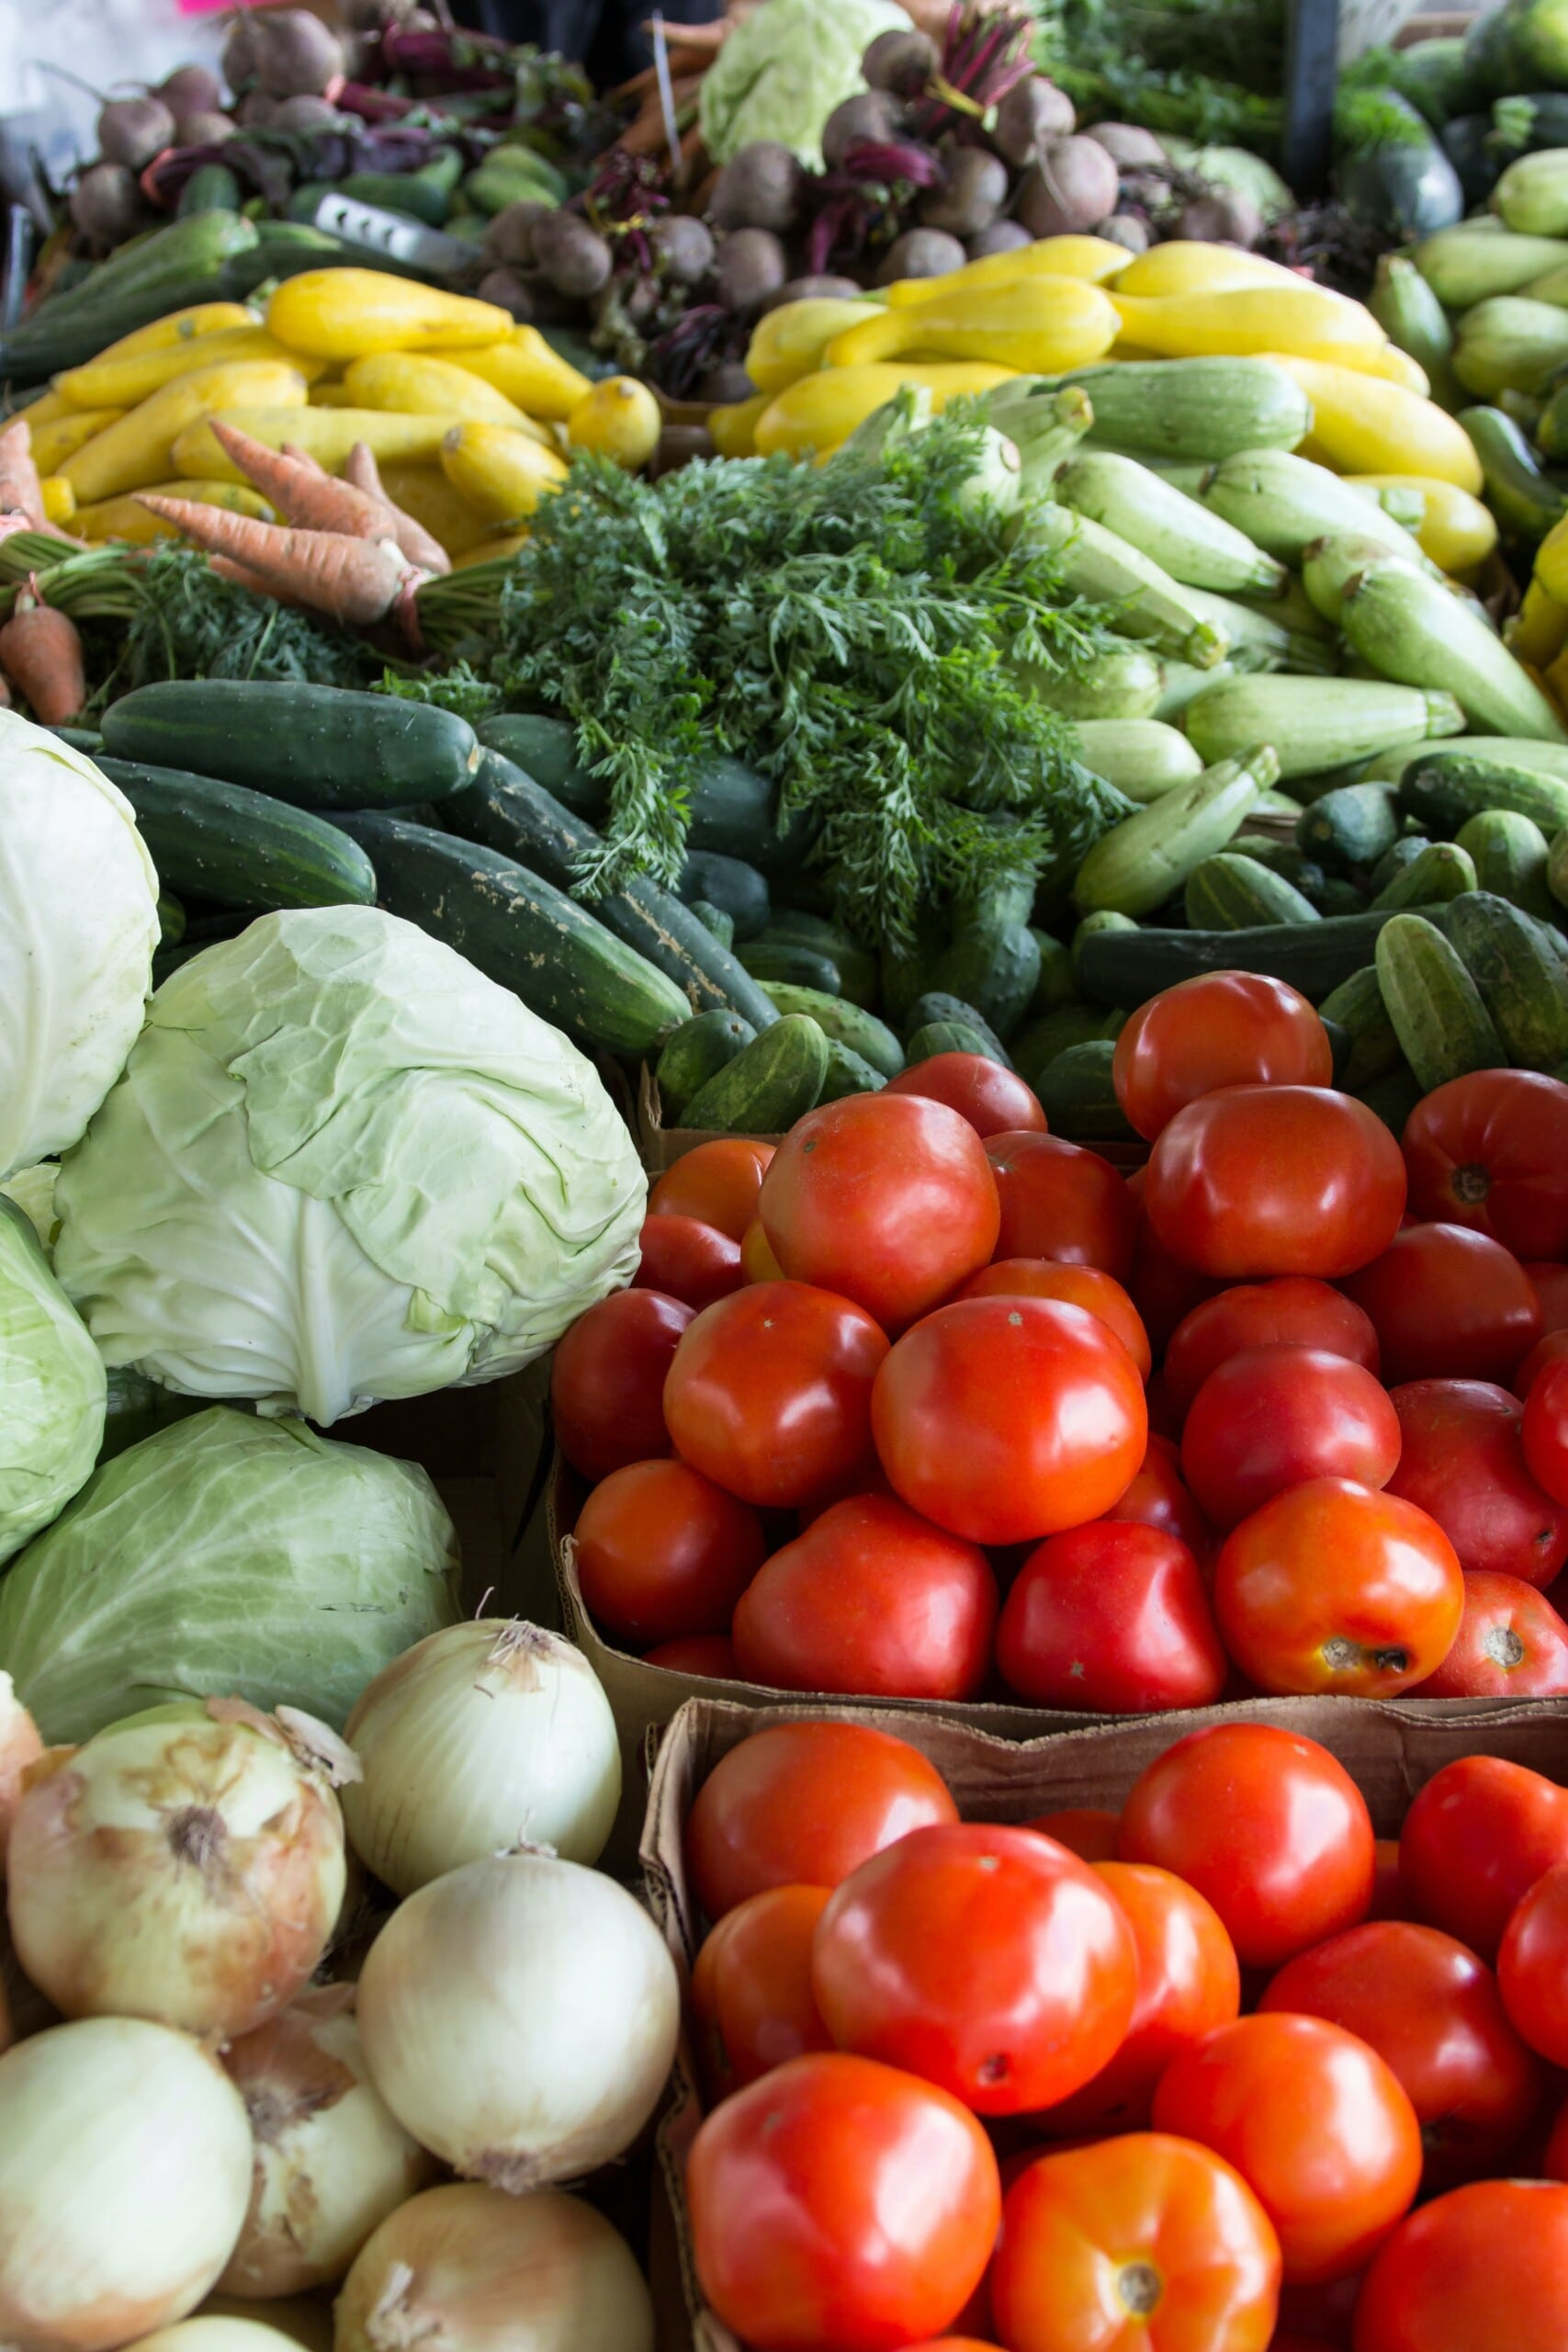 Learn how to keep fresh produce - fruits and vegetables - from rotting